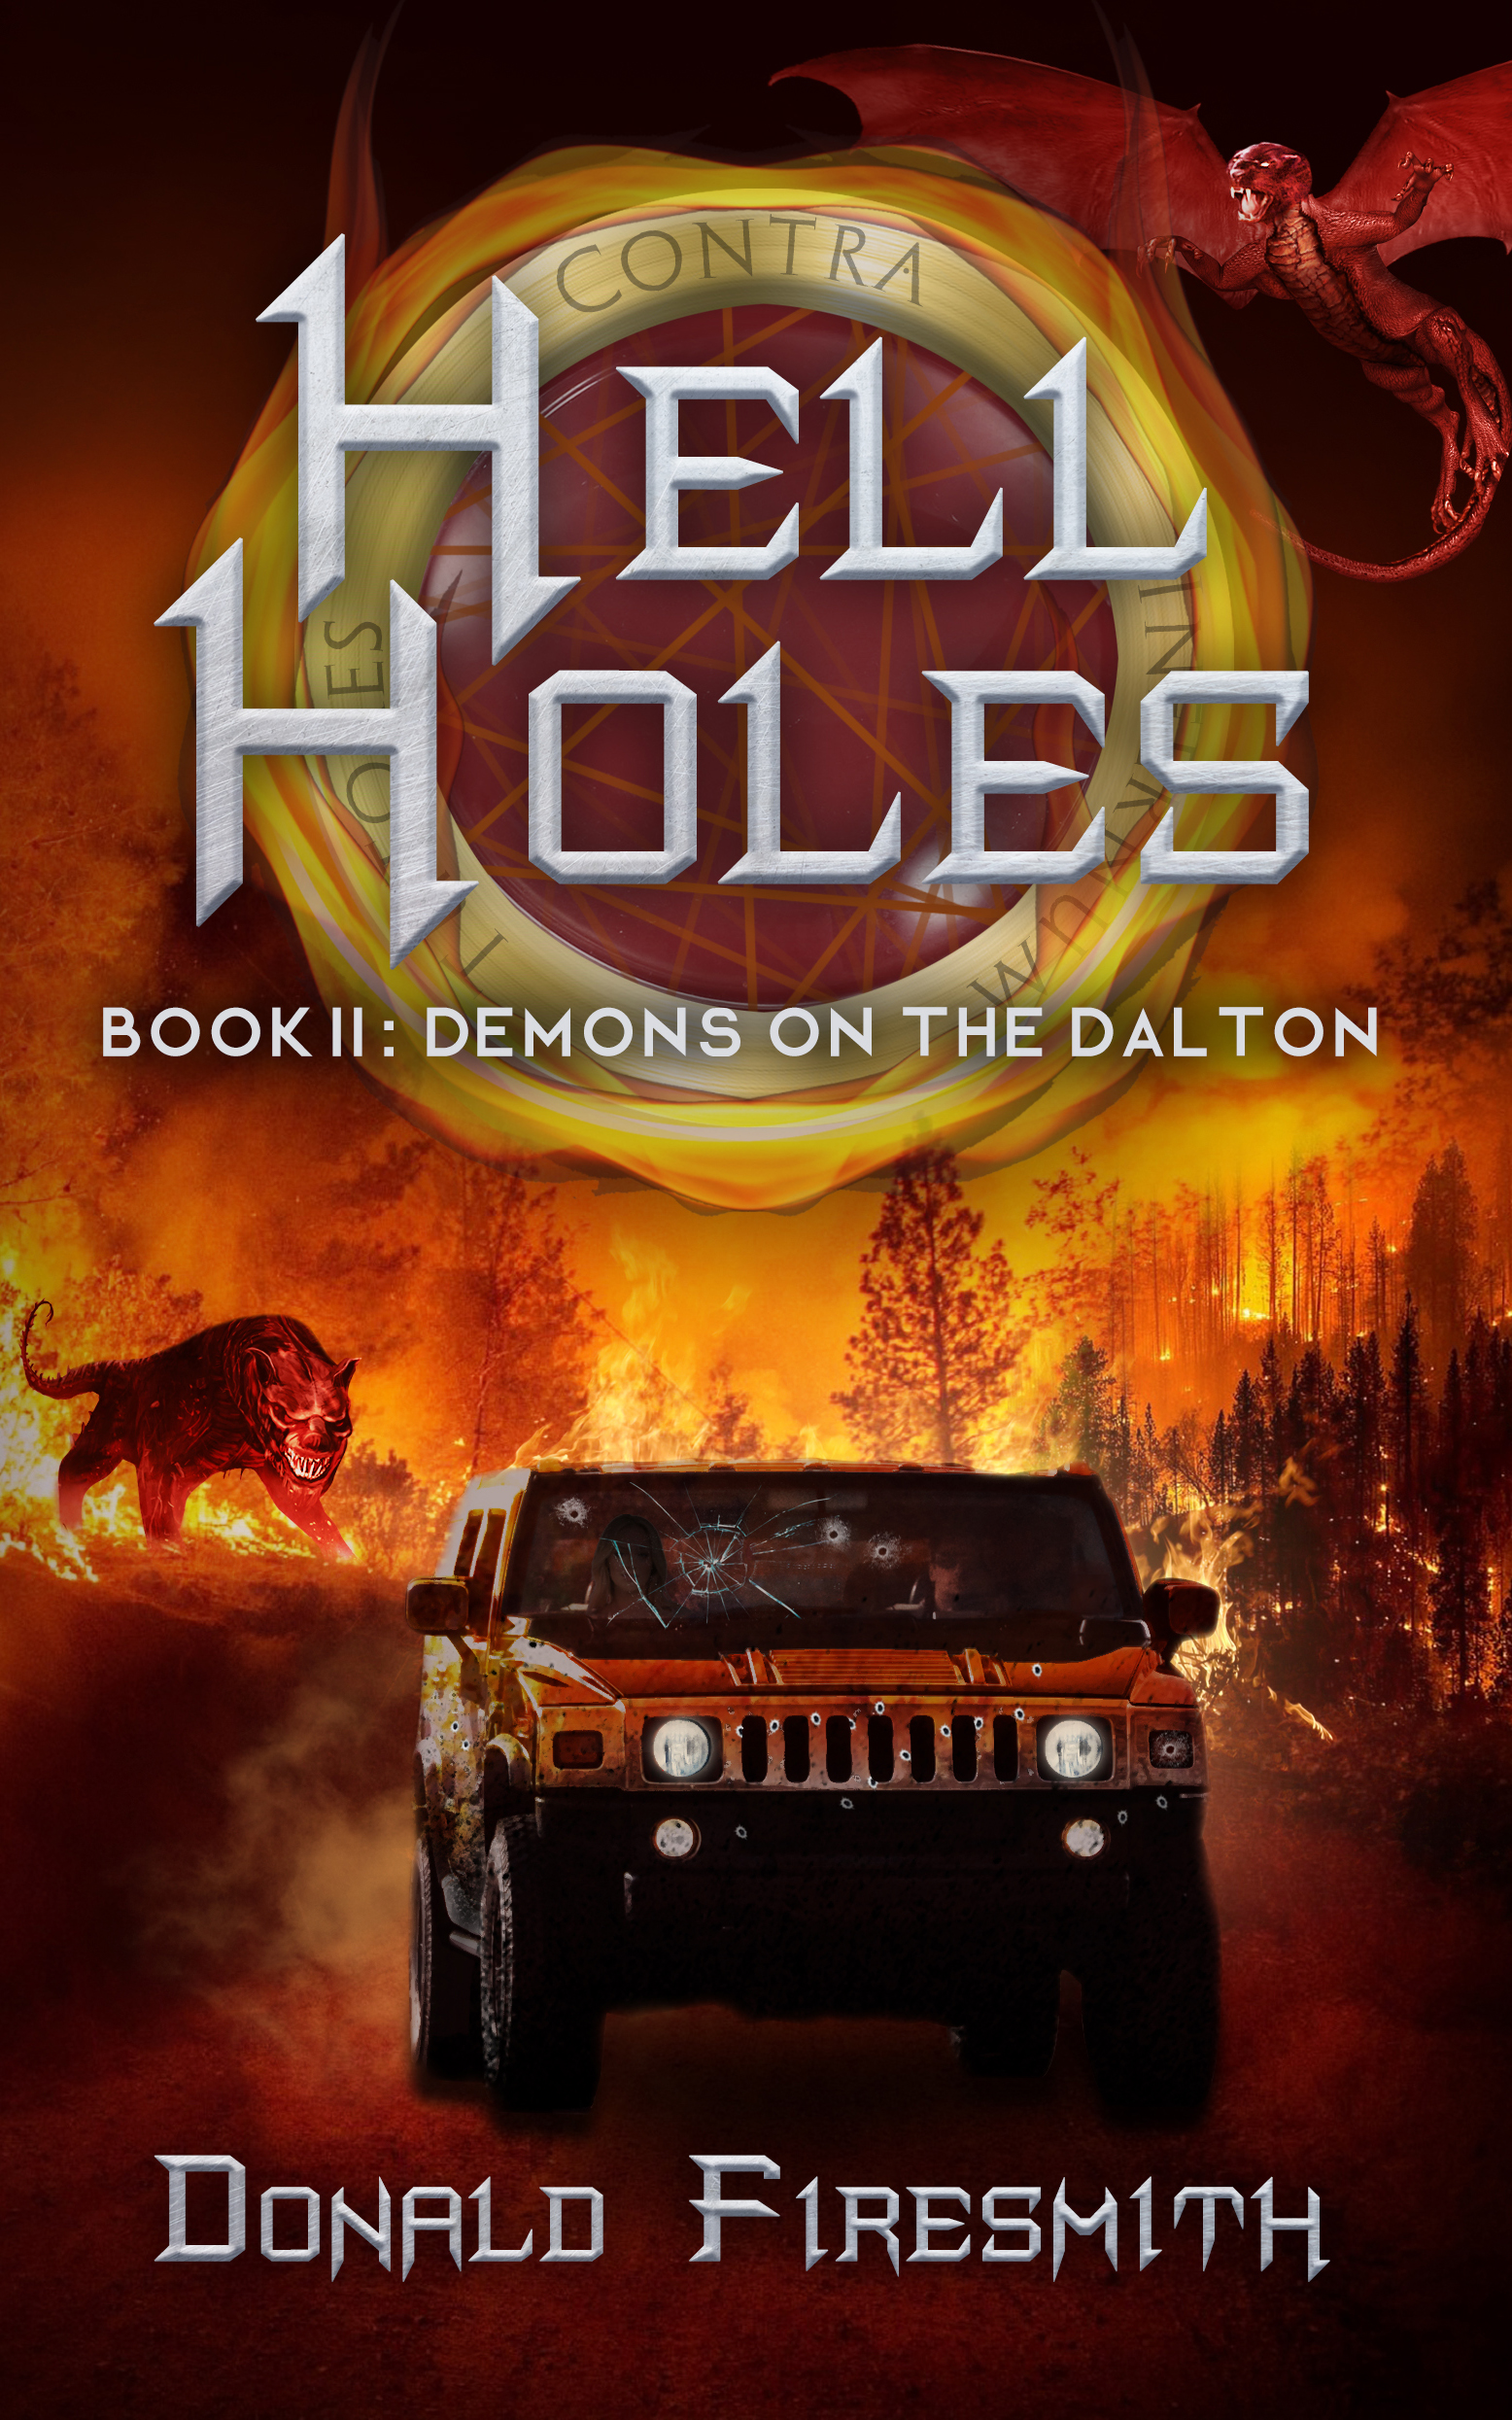 The Front Cover of Hell Holes 2: Demons on the Dalton